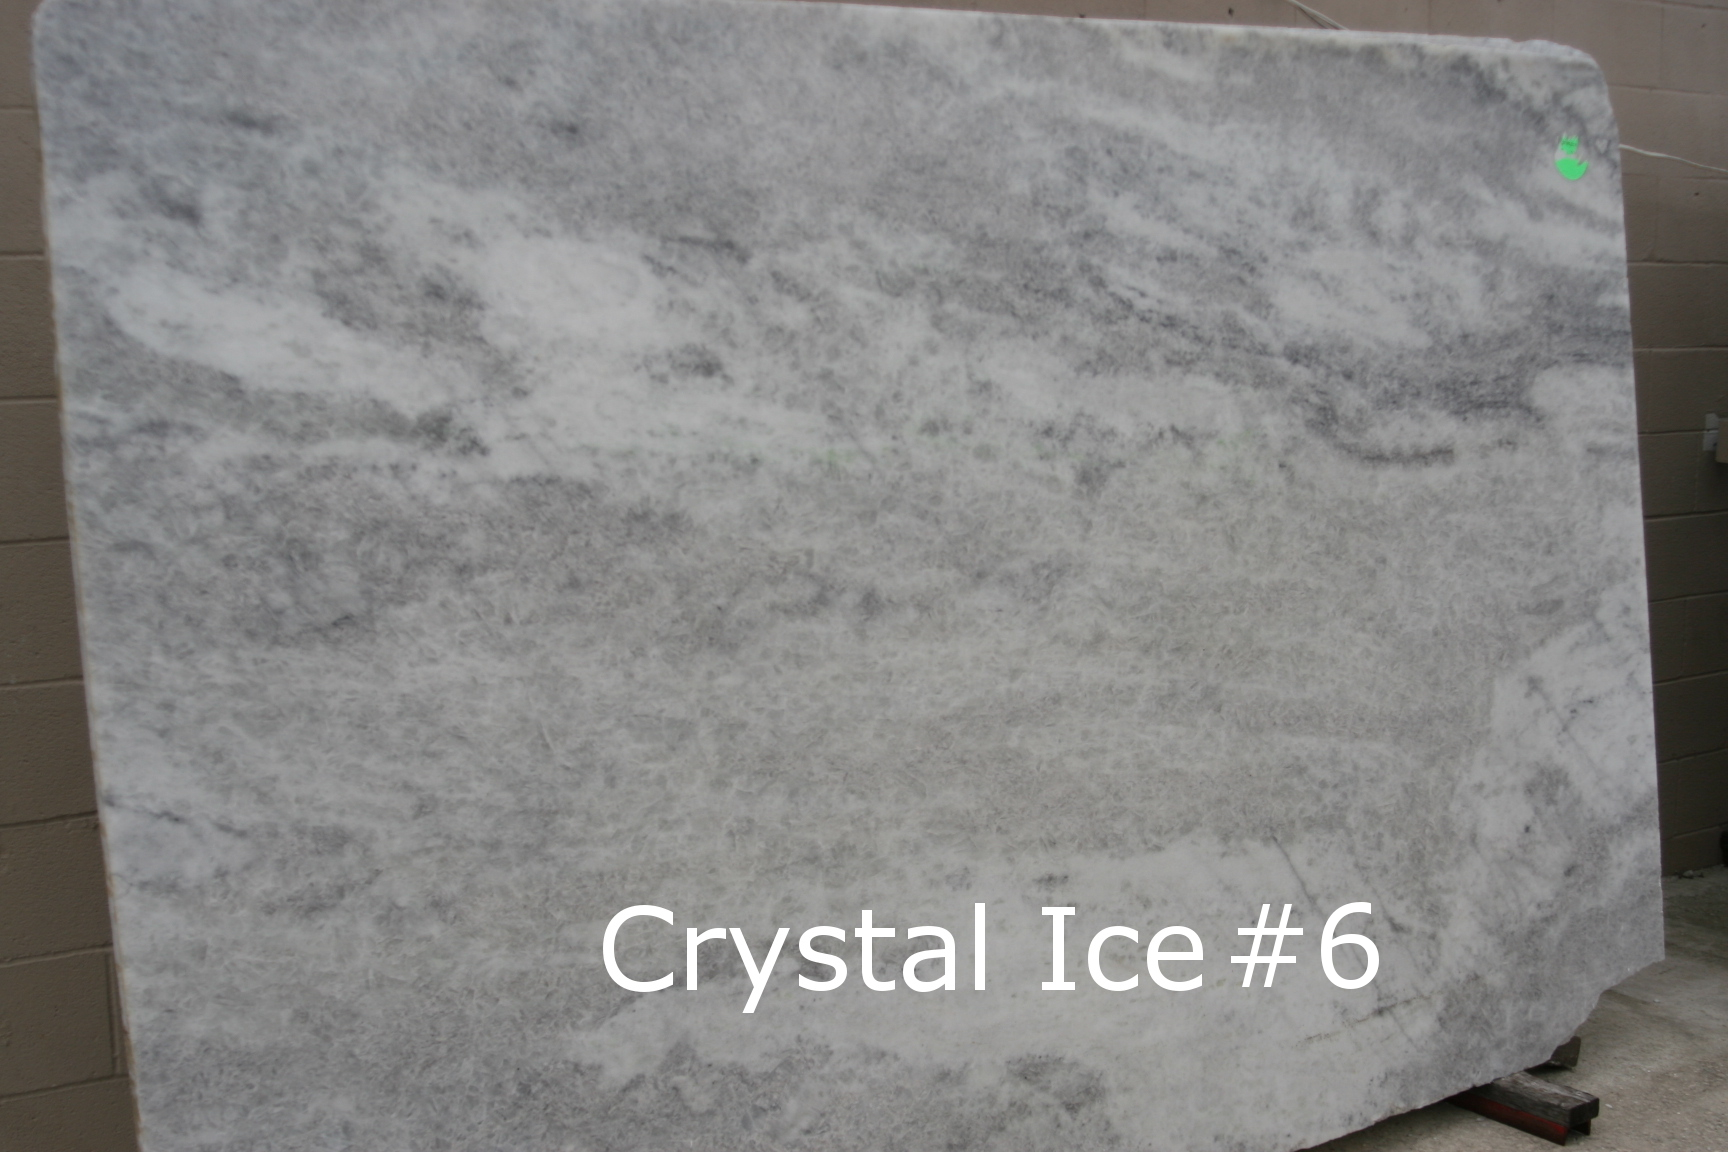 Crystal Ice #6